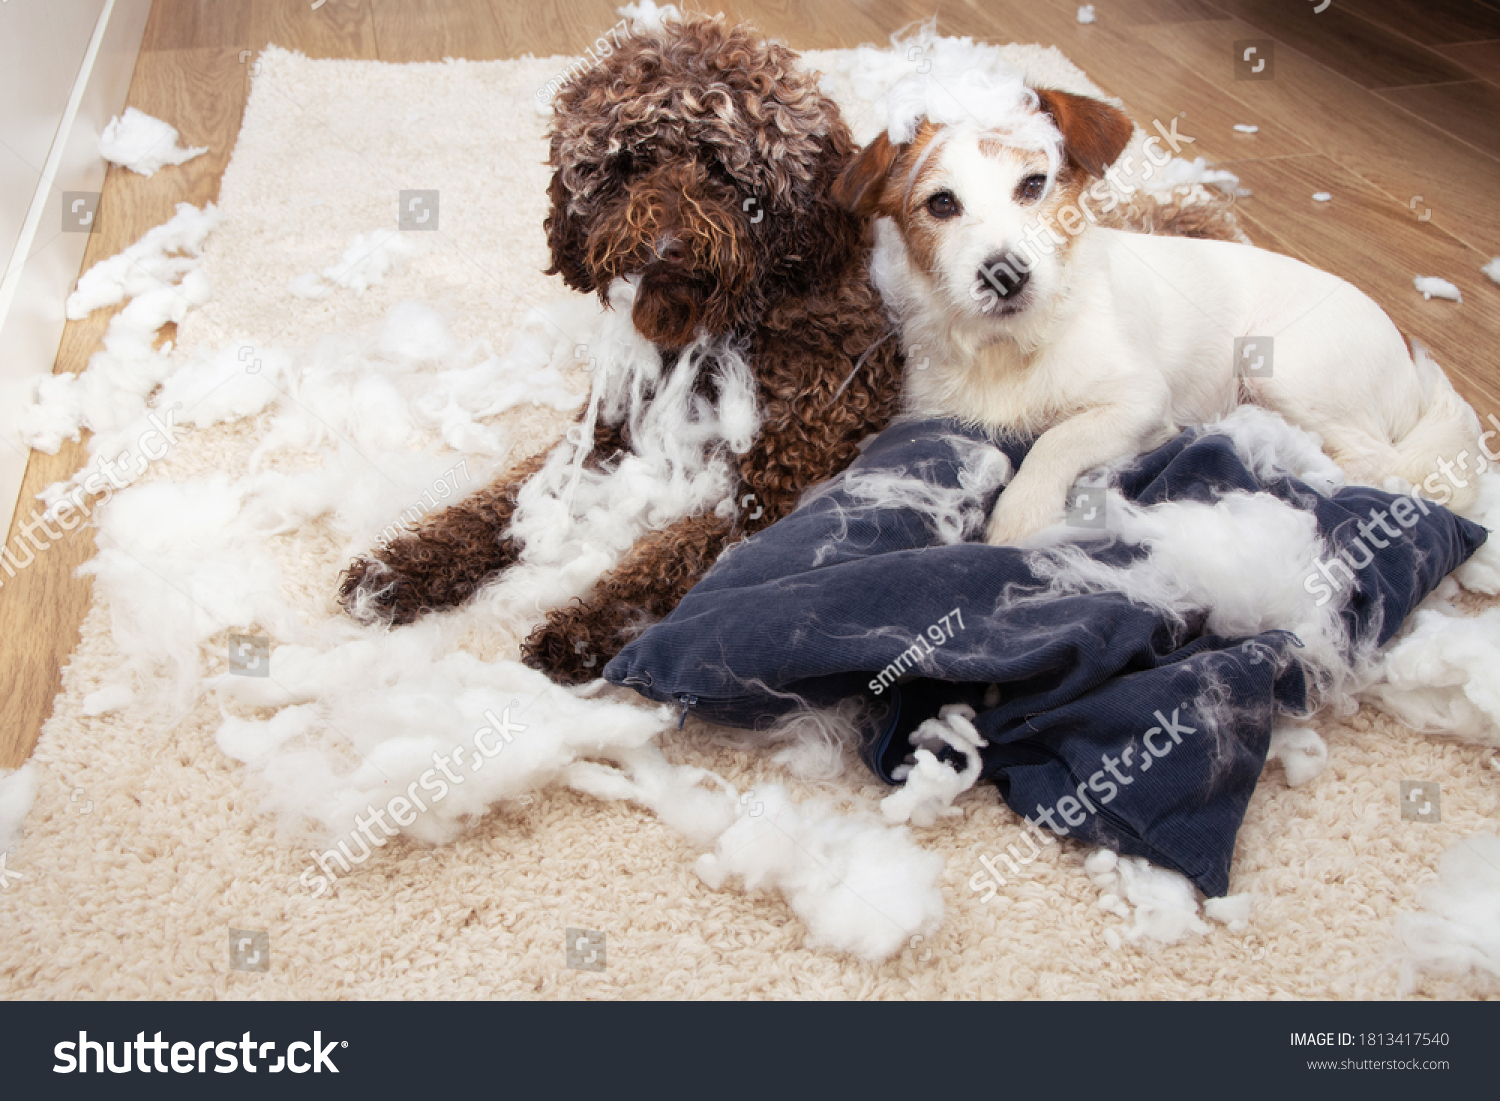 Dog mischief. Two dogs with innocent expression after destroy a pillow. separation anxiety and obedience training concept. #1813417540